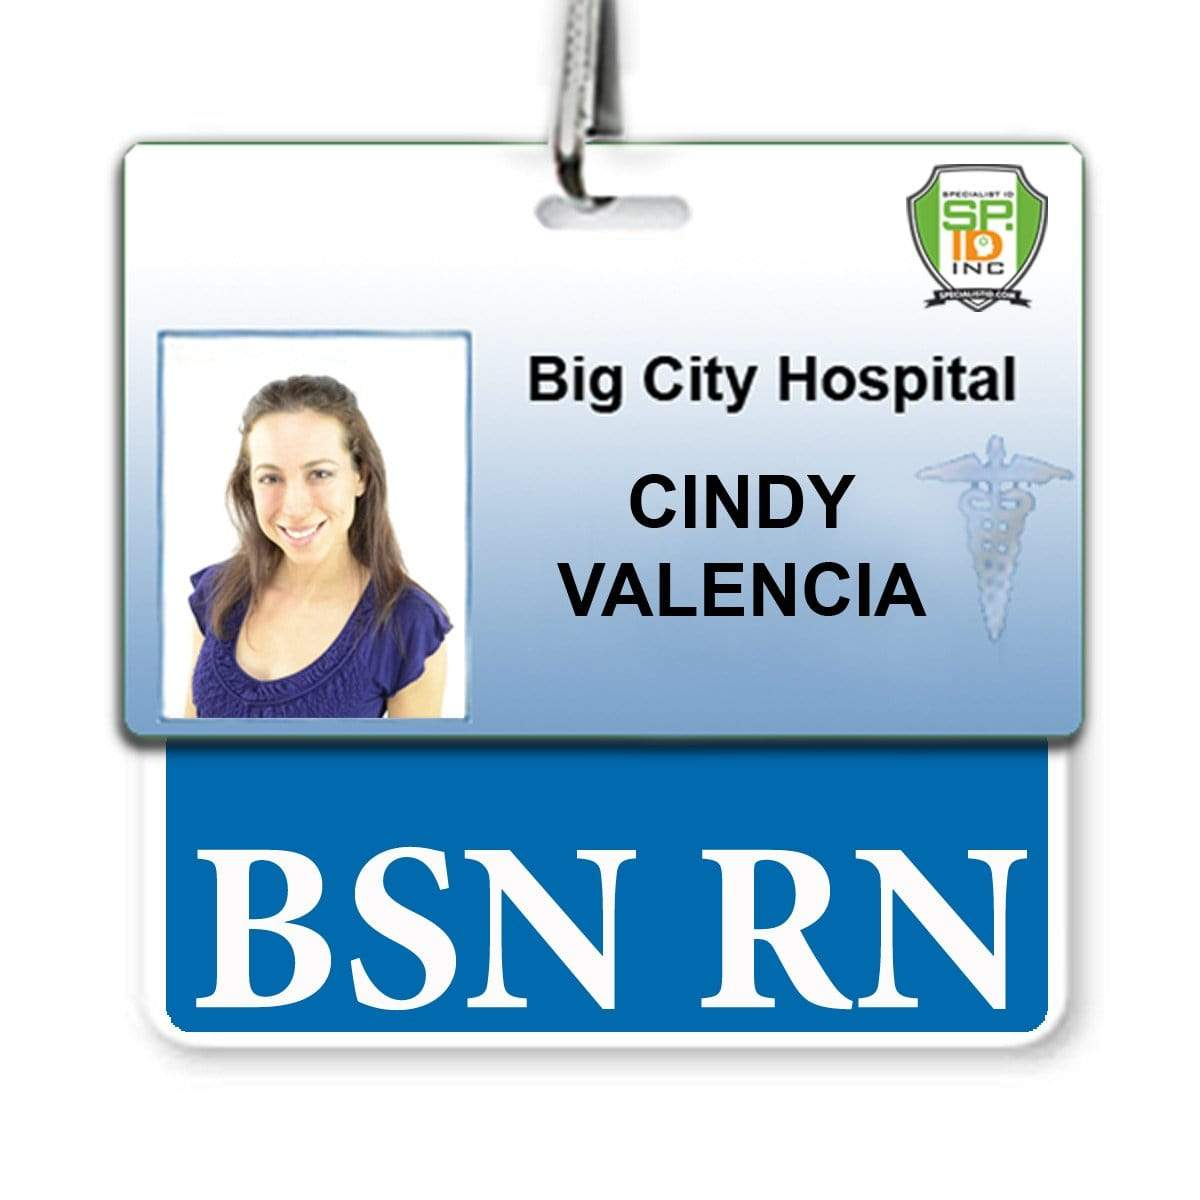 BSN RN Registered Nurse Horizontal Badge Buddy - 2 Sided ID Backer for BSN Registered Nurses